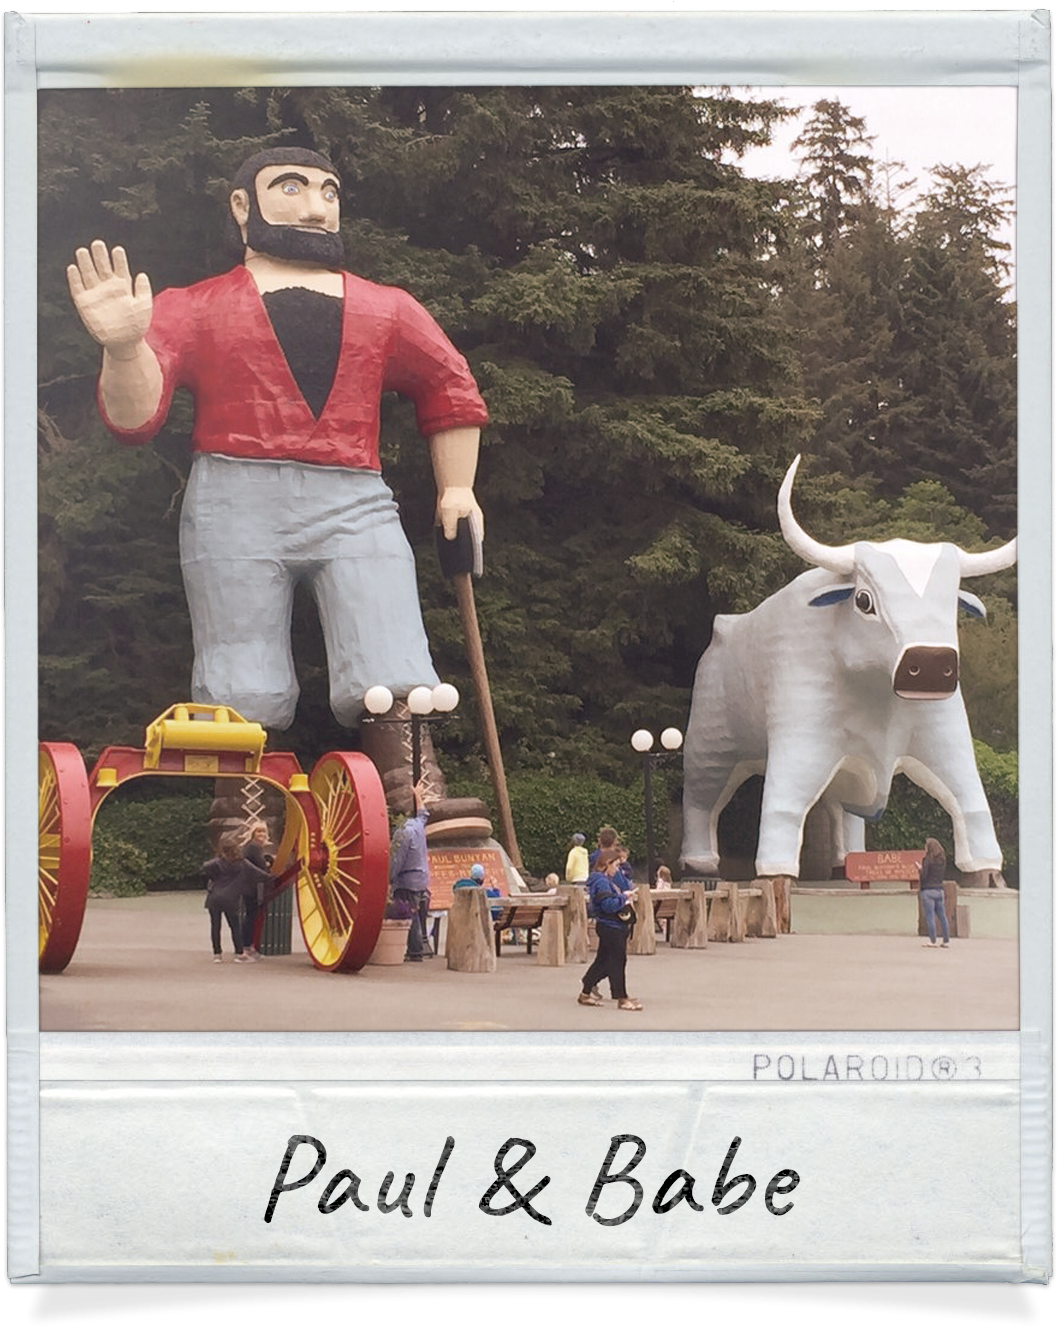 Paul Bunyan and Babe giant statues